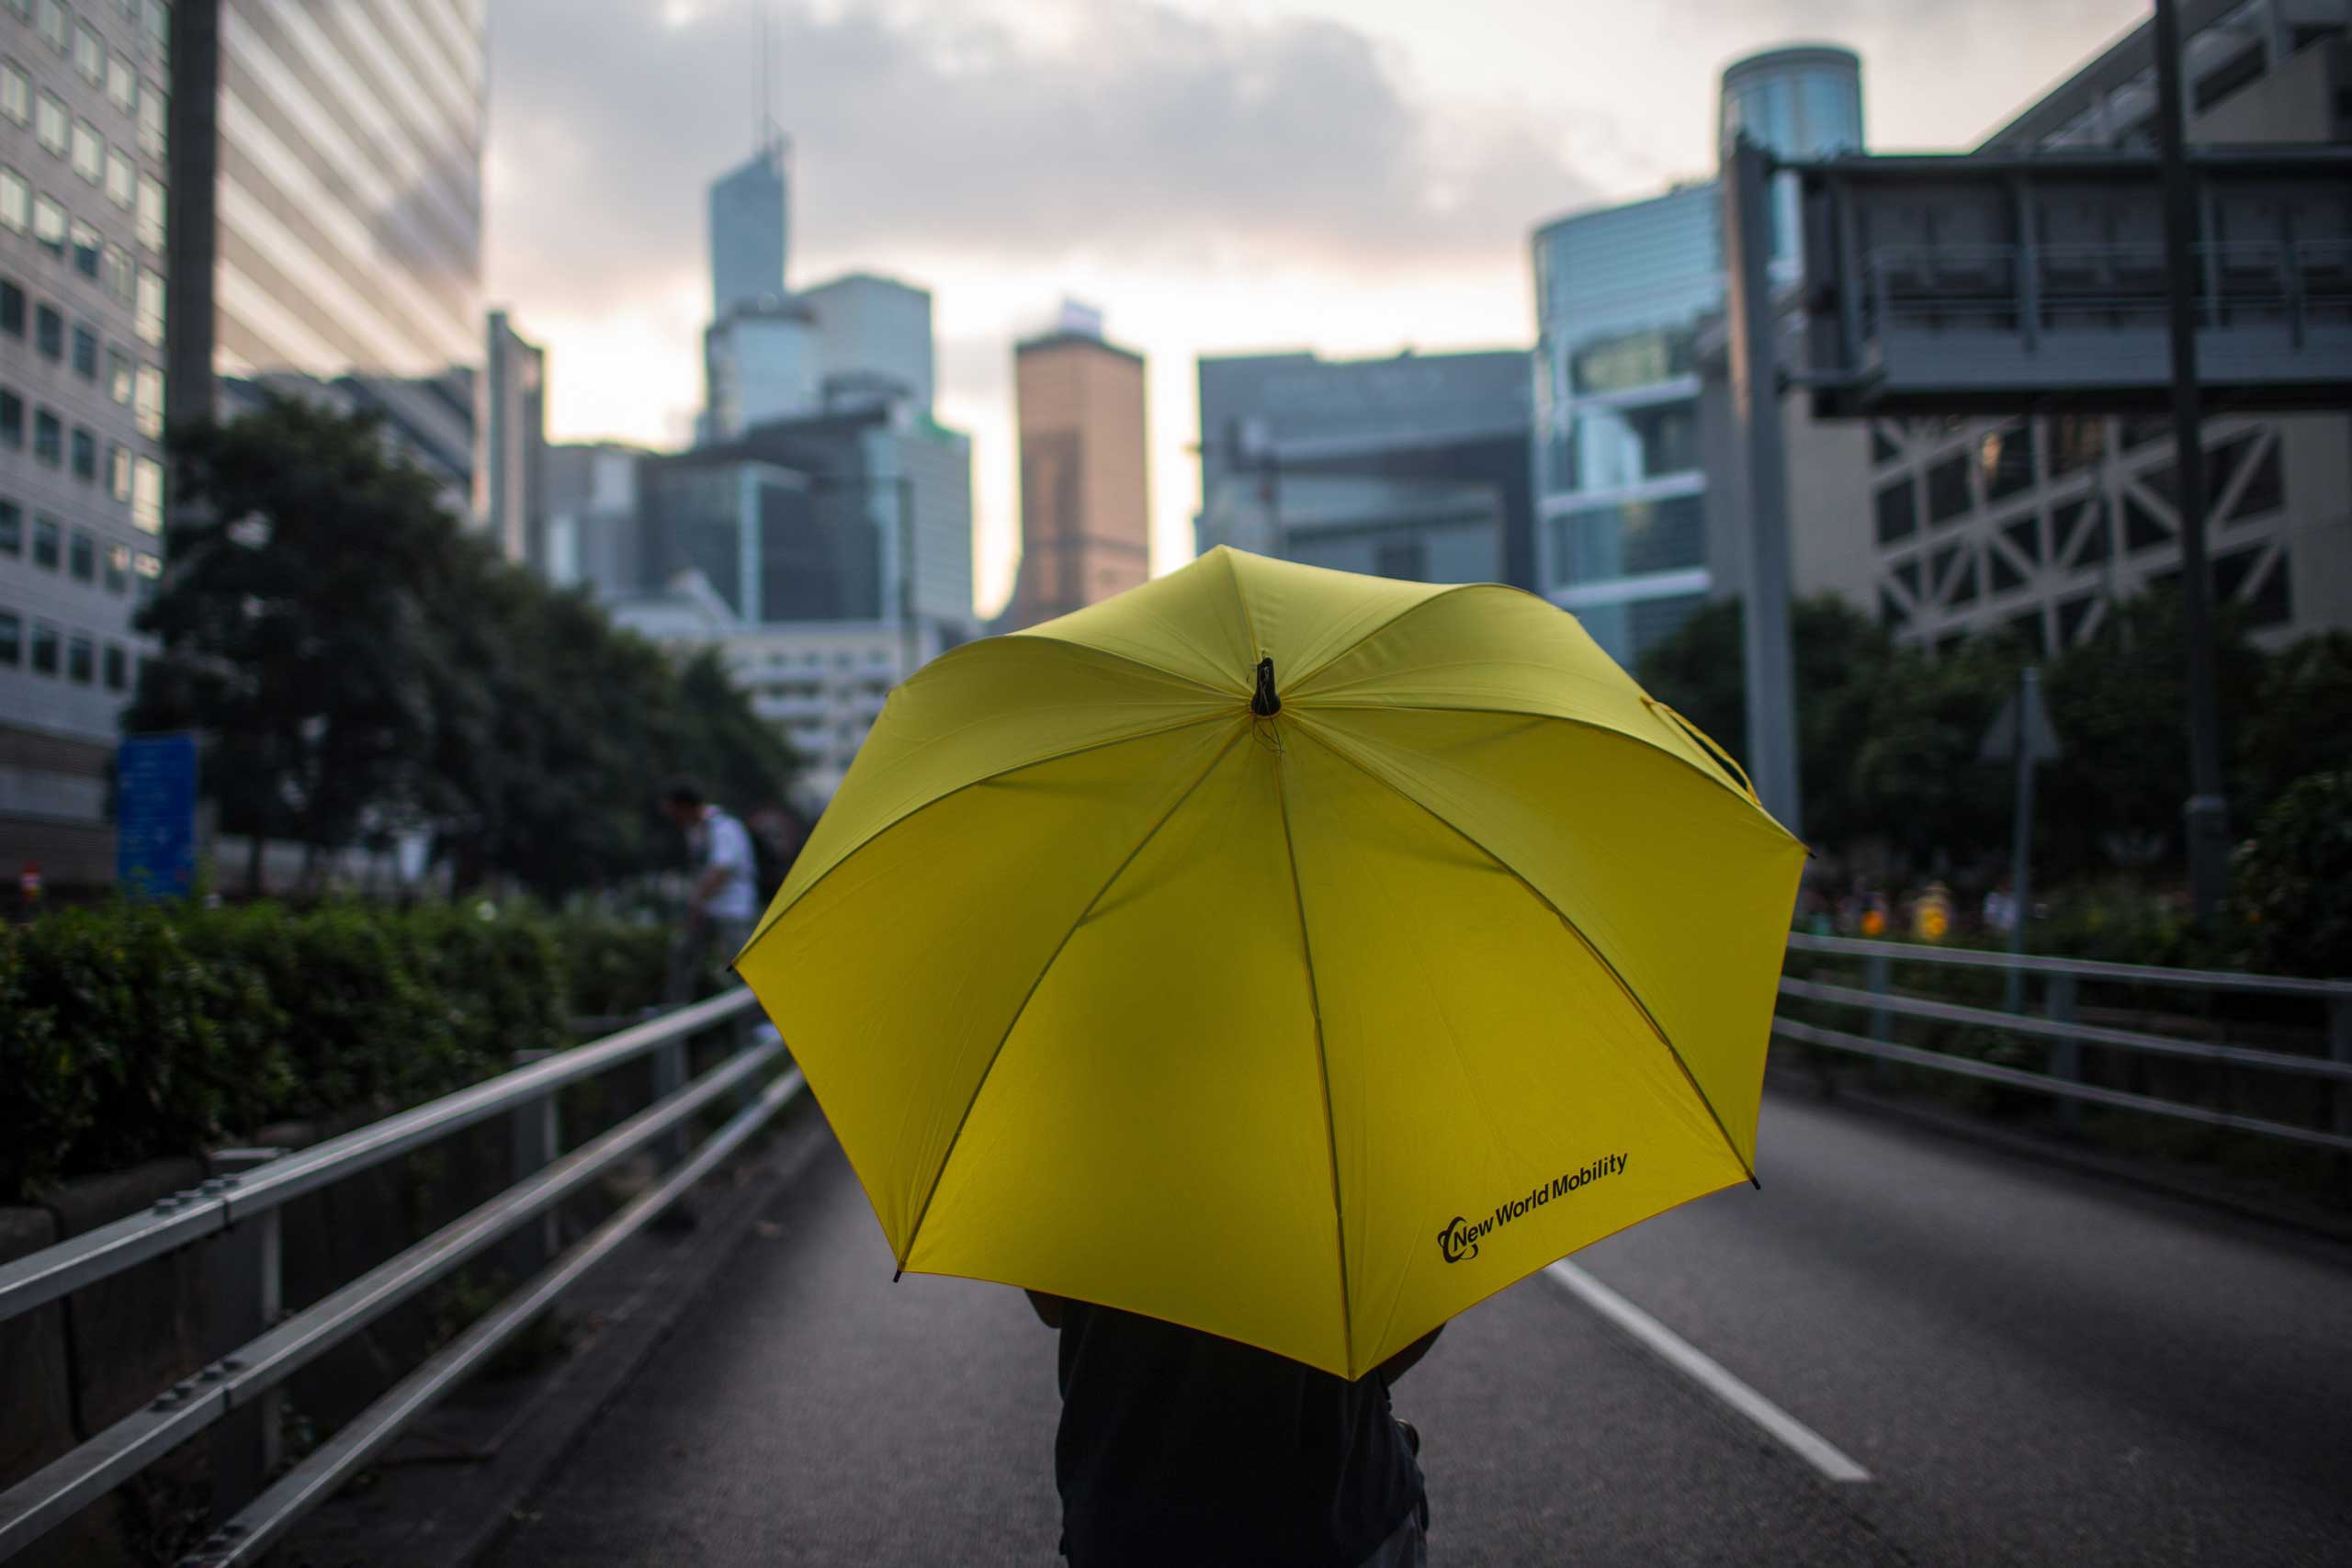 A protester holding an umbrella stands on the street close to the Hong Kong Government Complex on Oct. 1, 2014 in Hong Kong.